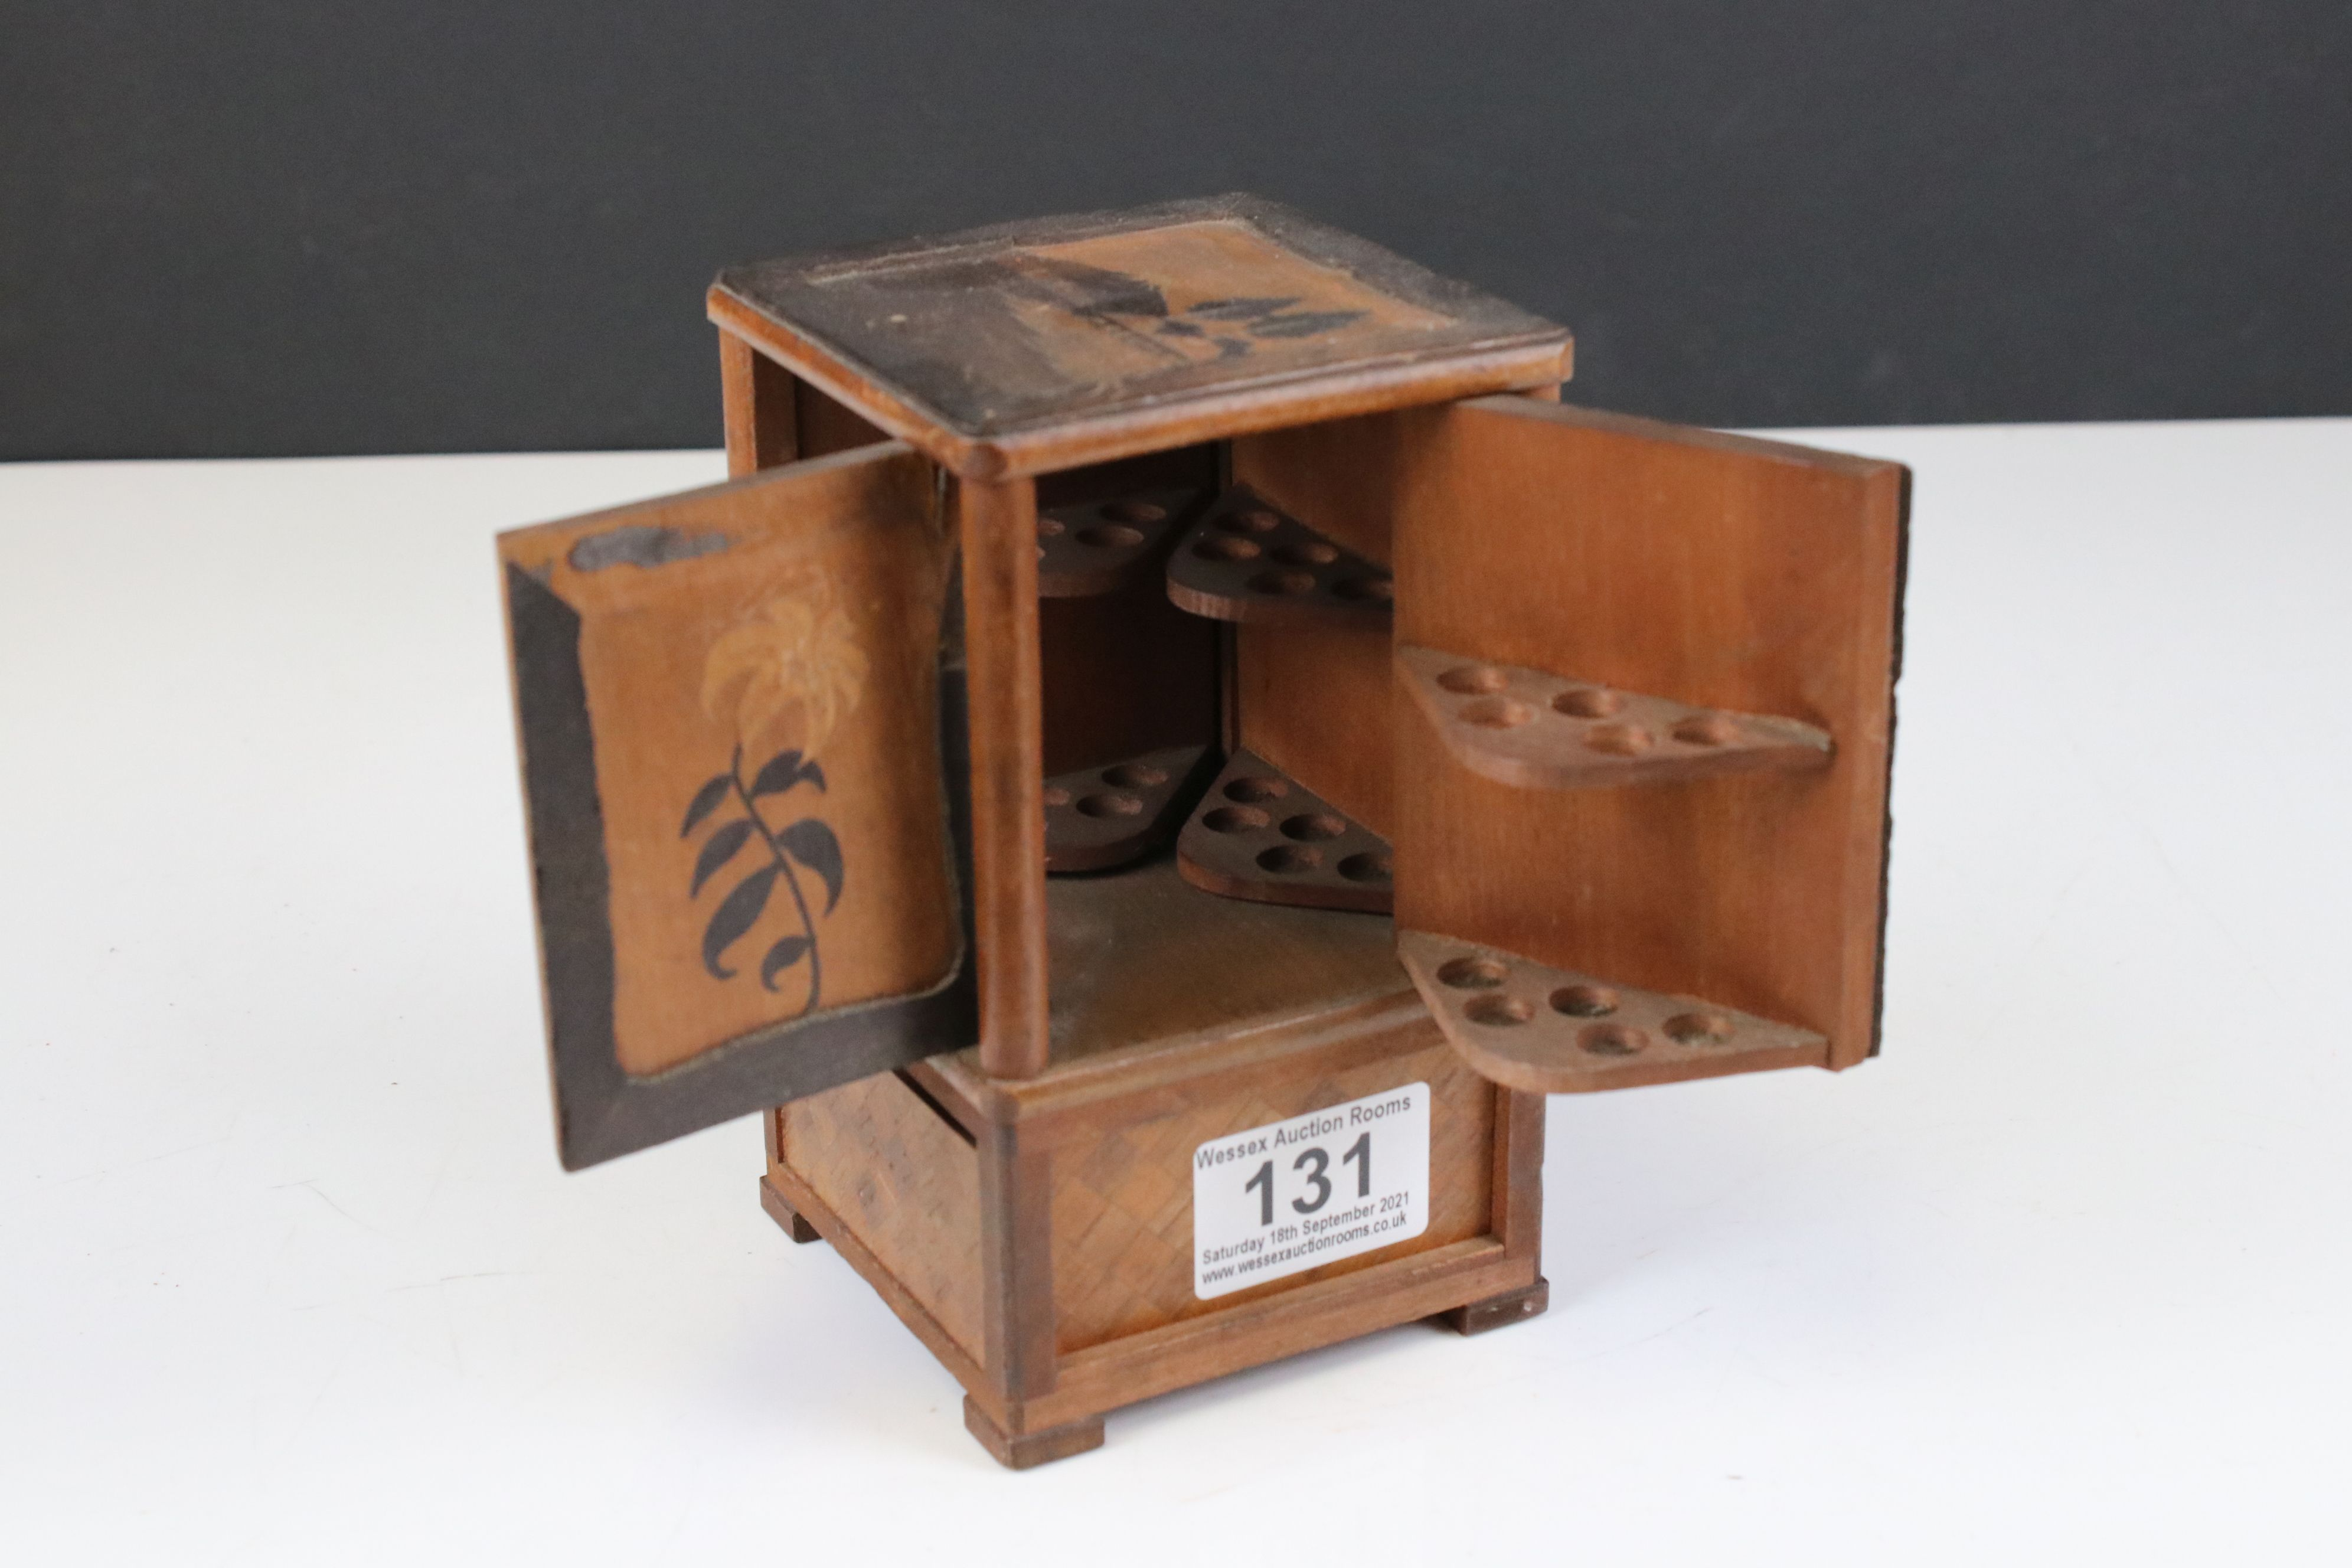 Japanese Wooden Inlaid Table Cigarette Dispenser, decorated with scenes of Mount Fuji, Flowers and